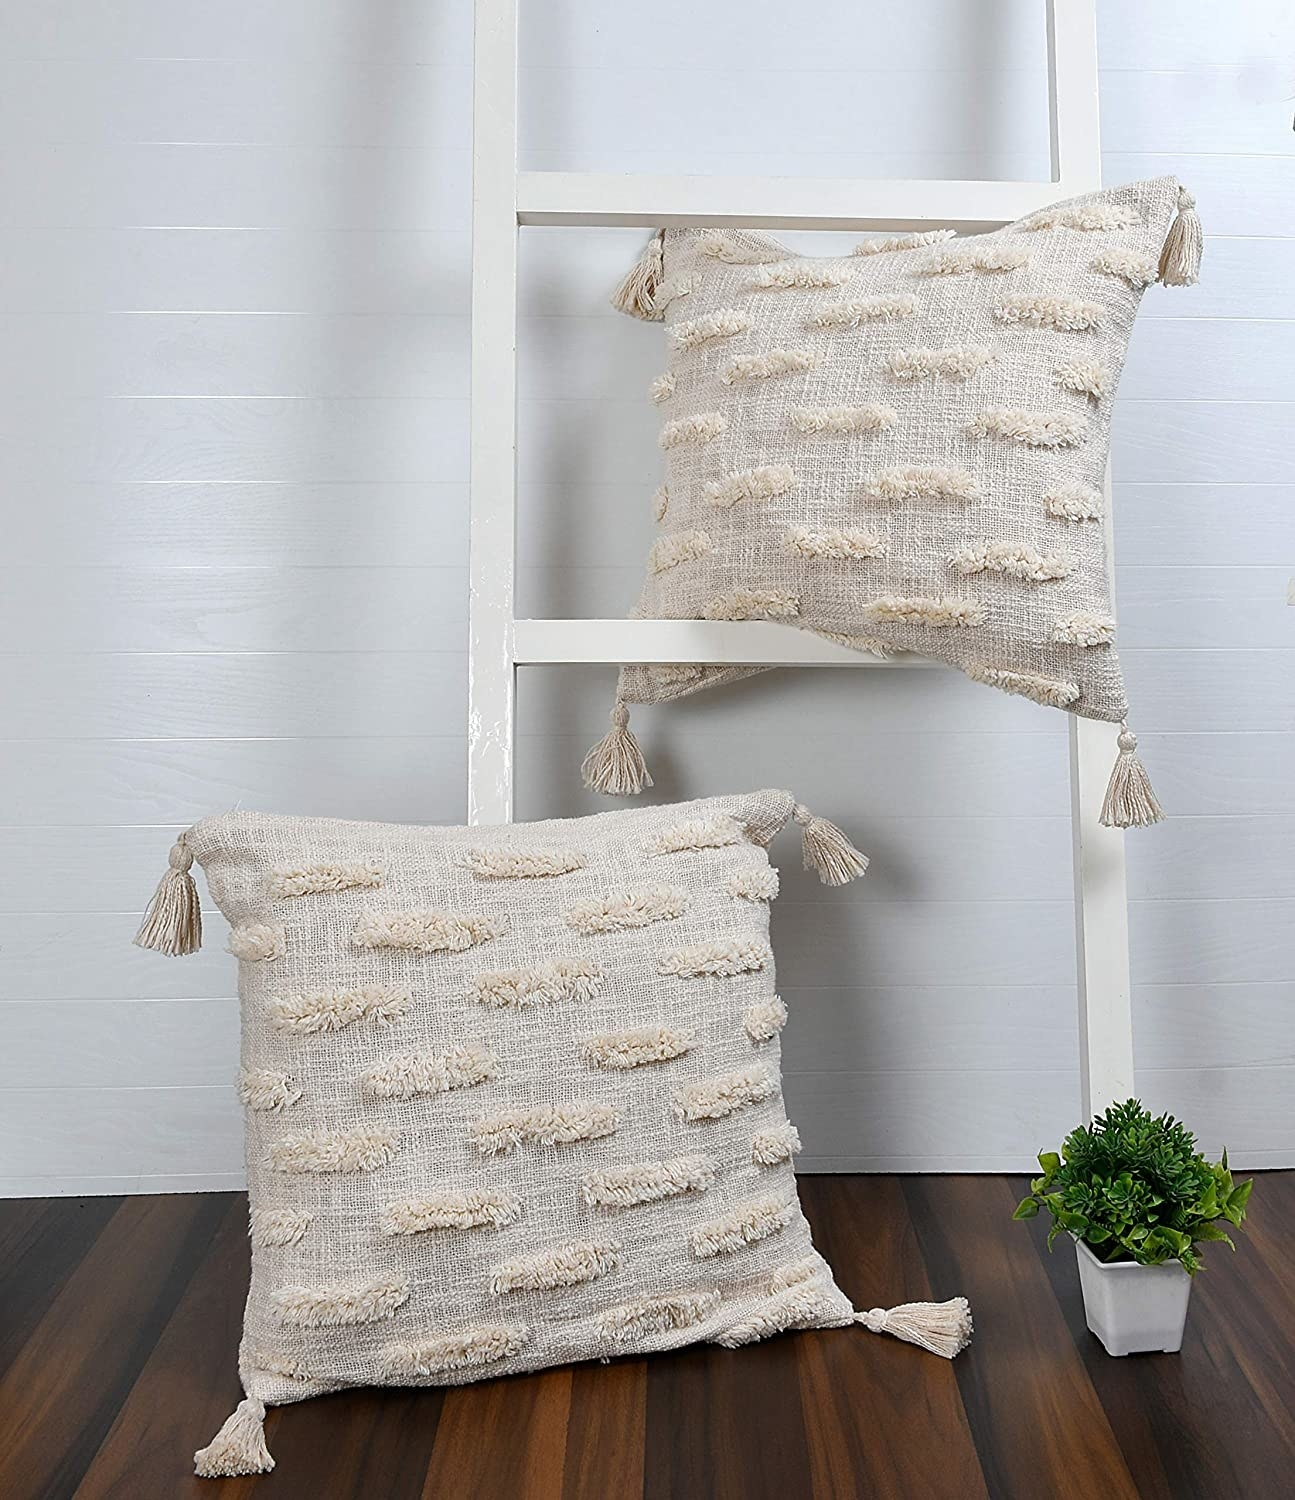 Pillows arranged on and in front of a ladder.